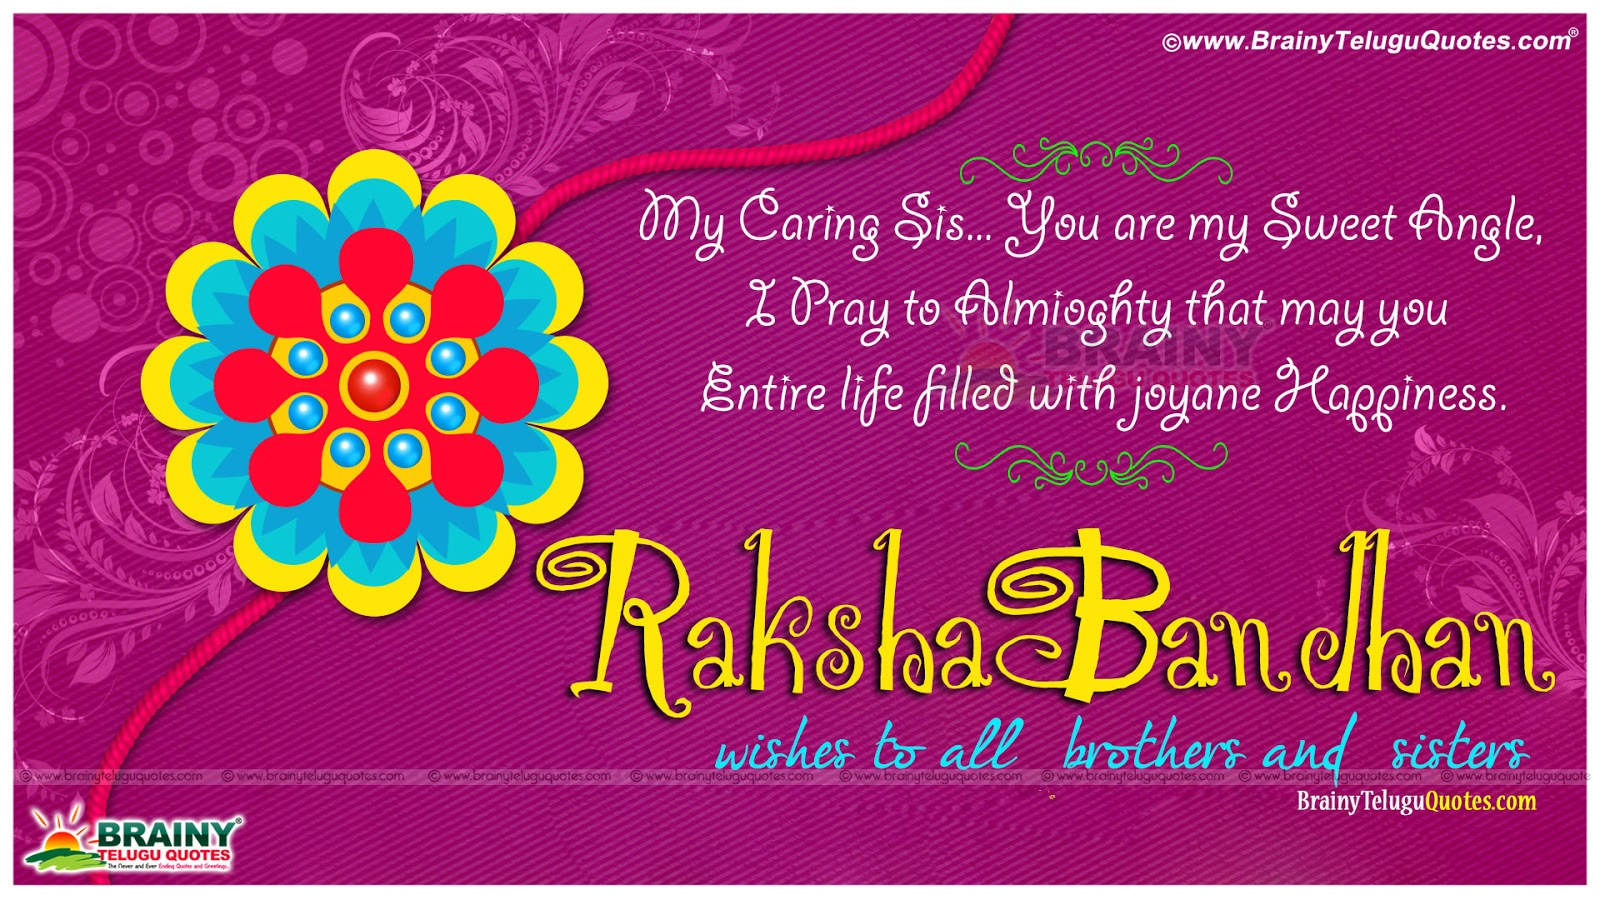 Happy raksha bandhan wishes with cool greeting cards new english raksha bandhan greeting and sms for brother in english brother rakhi messages and kristyandbryce Image collections